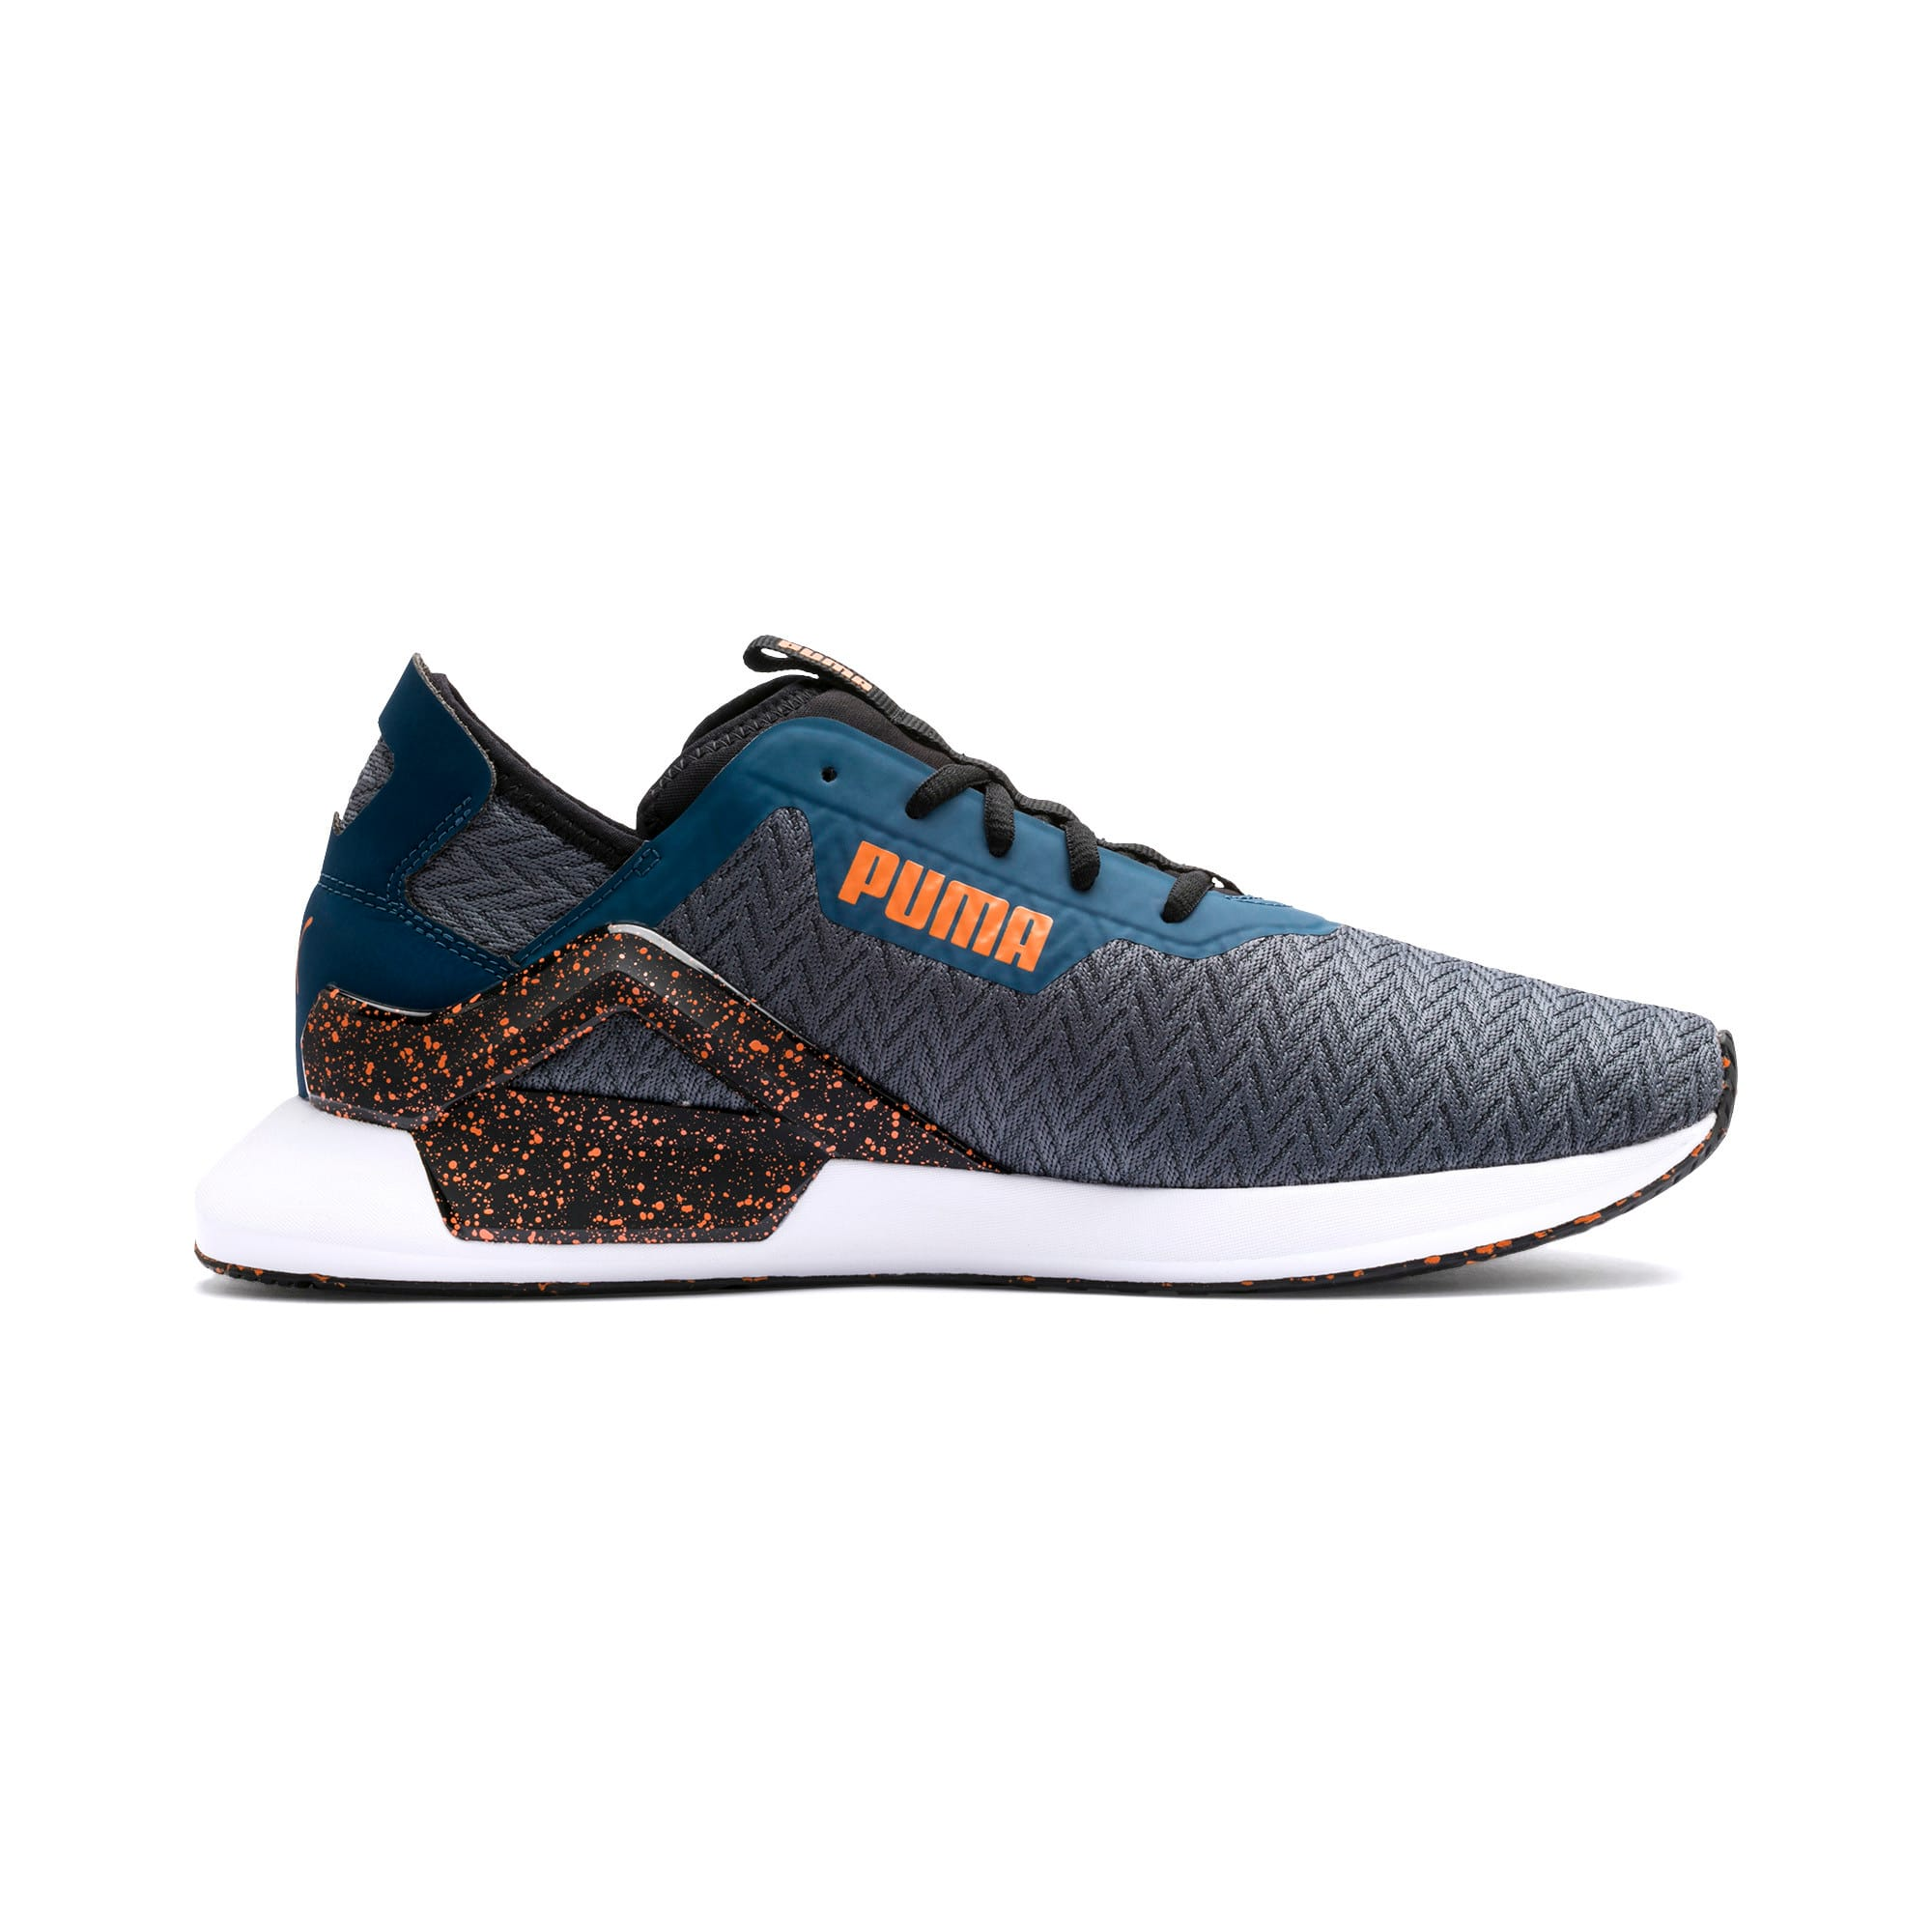 Thumbnail 6 of Rogue X Terrain Herren Sneaker, CASTLEROCK-Gibr Sea-J Orange, medium